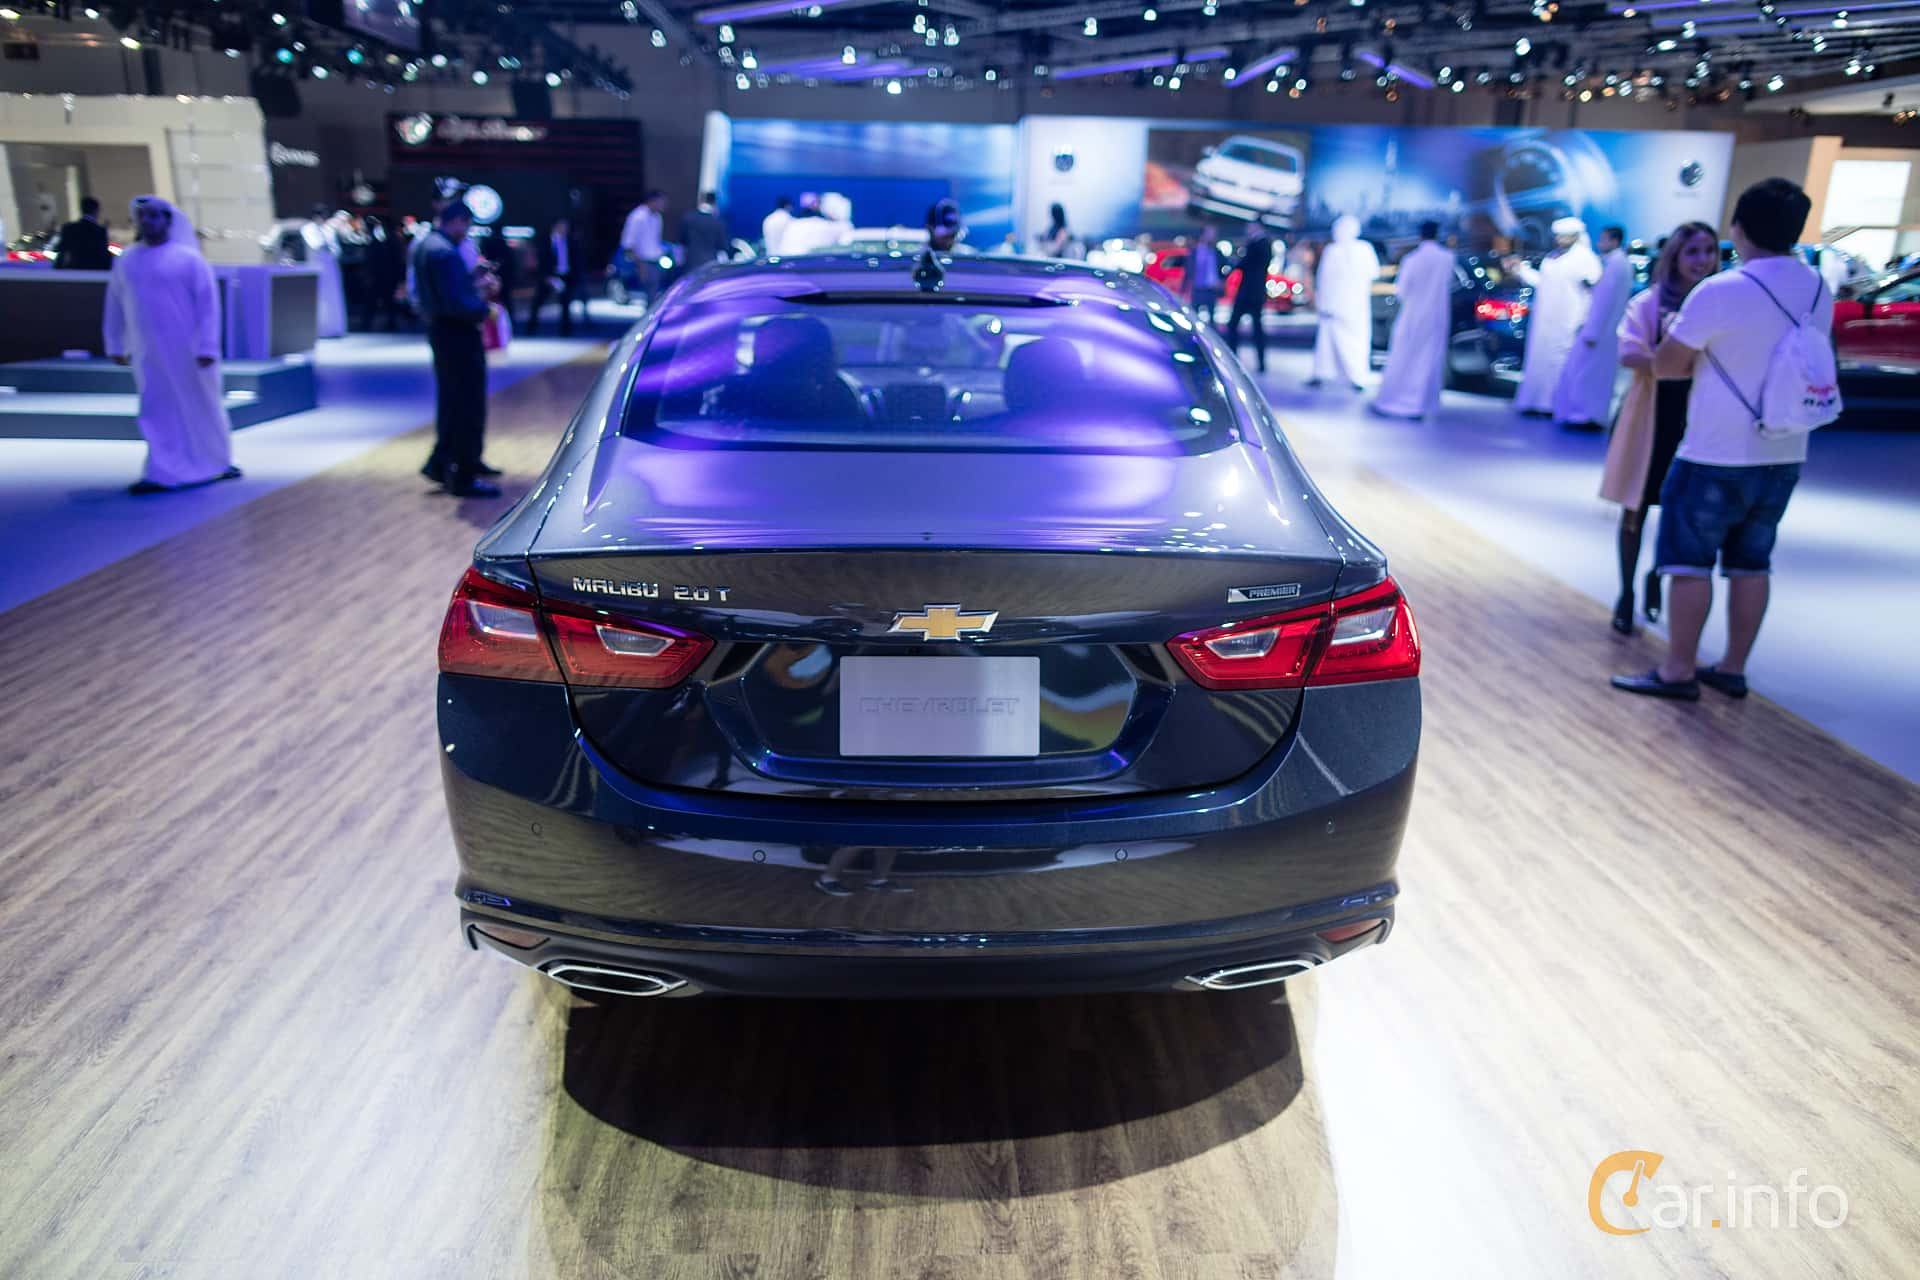 Chevrolet Malibu 2.0 Automatic, 253hp, 2016 at Dubai Motor Show 2015